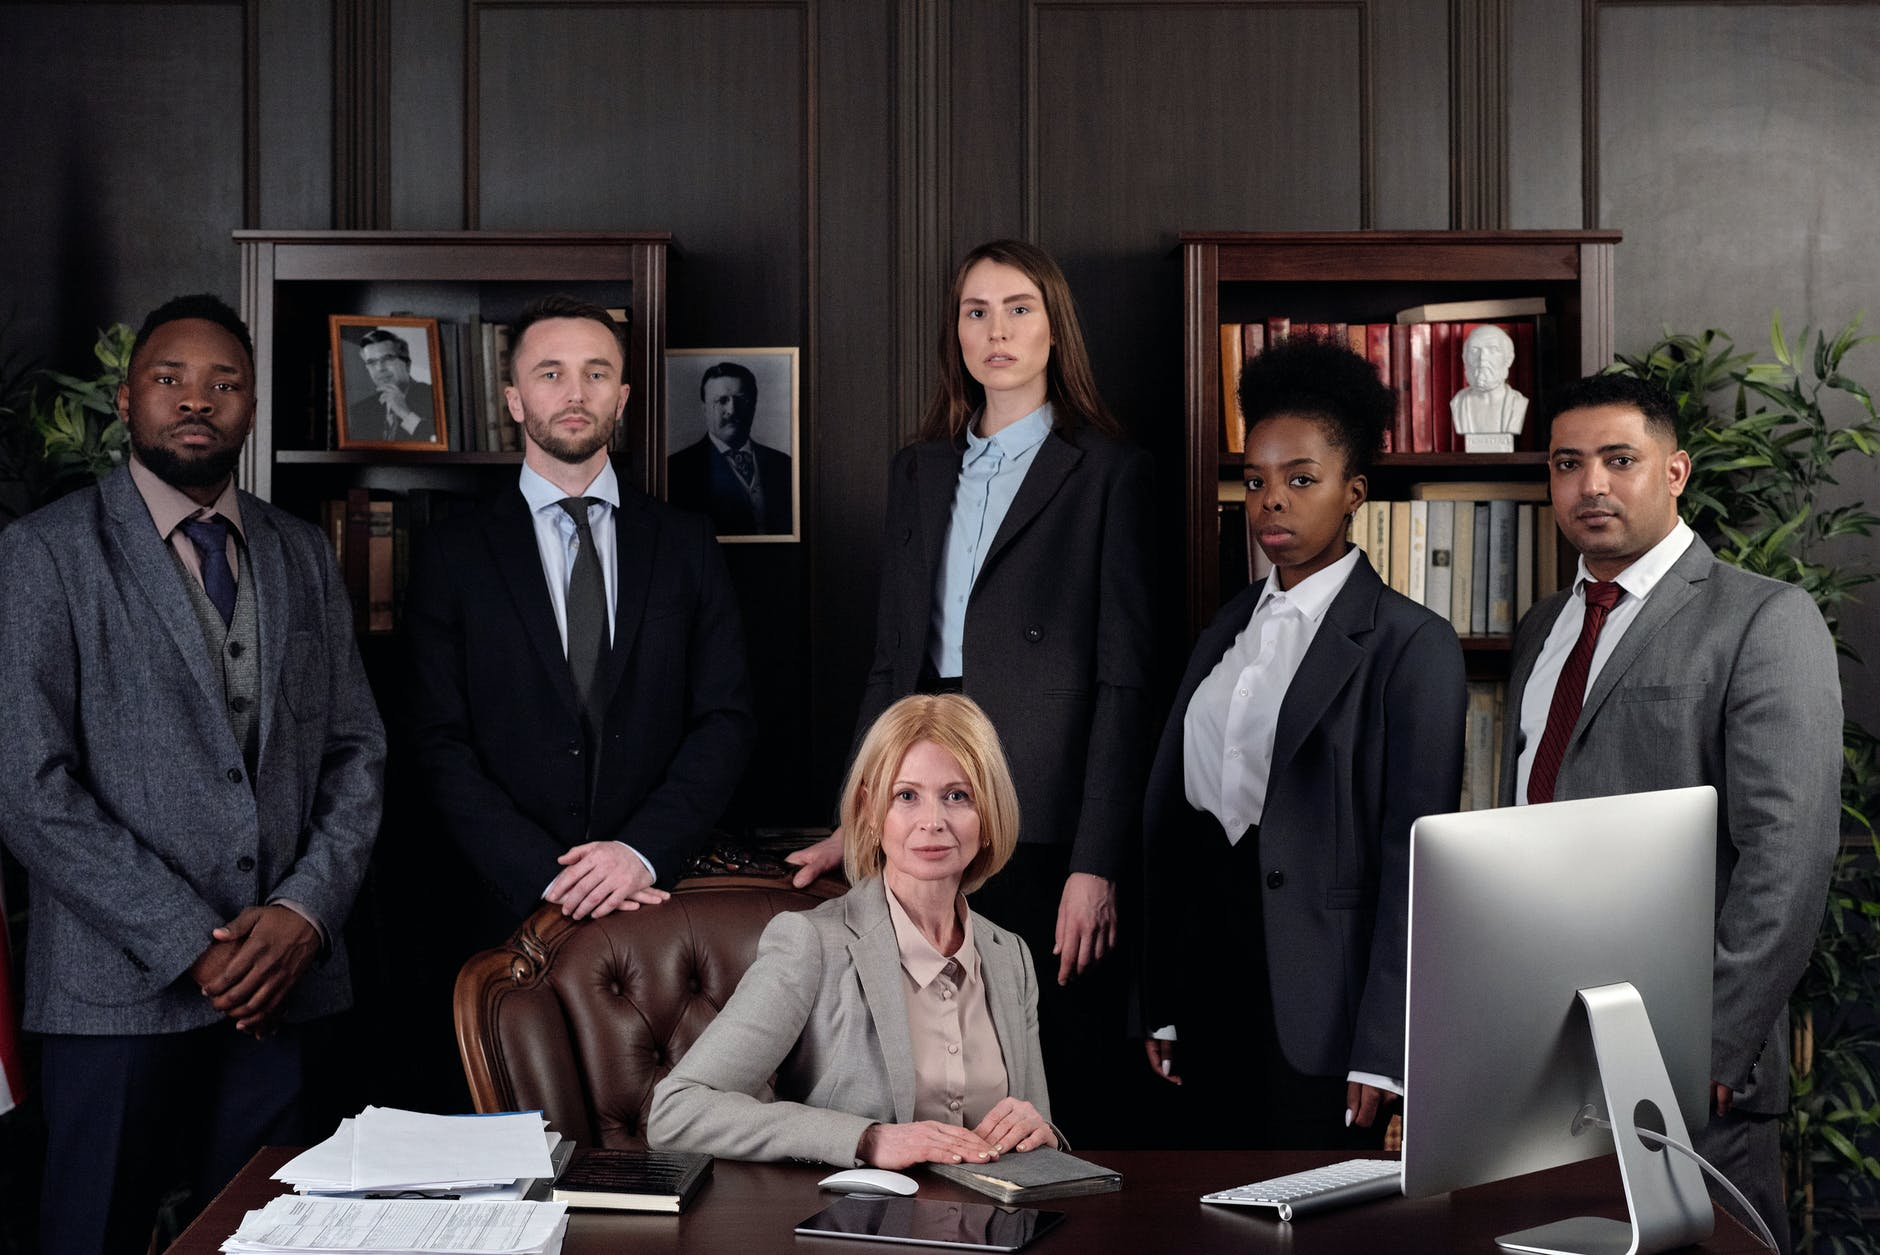 lawyers posing for a photo